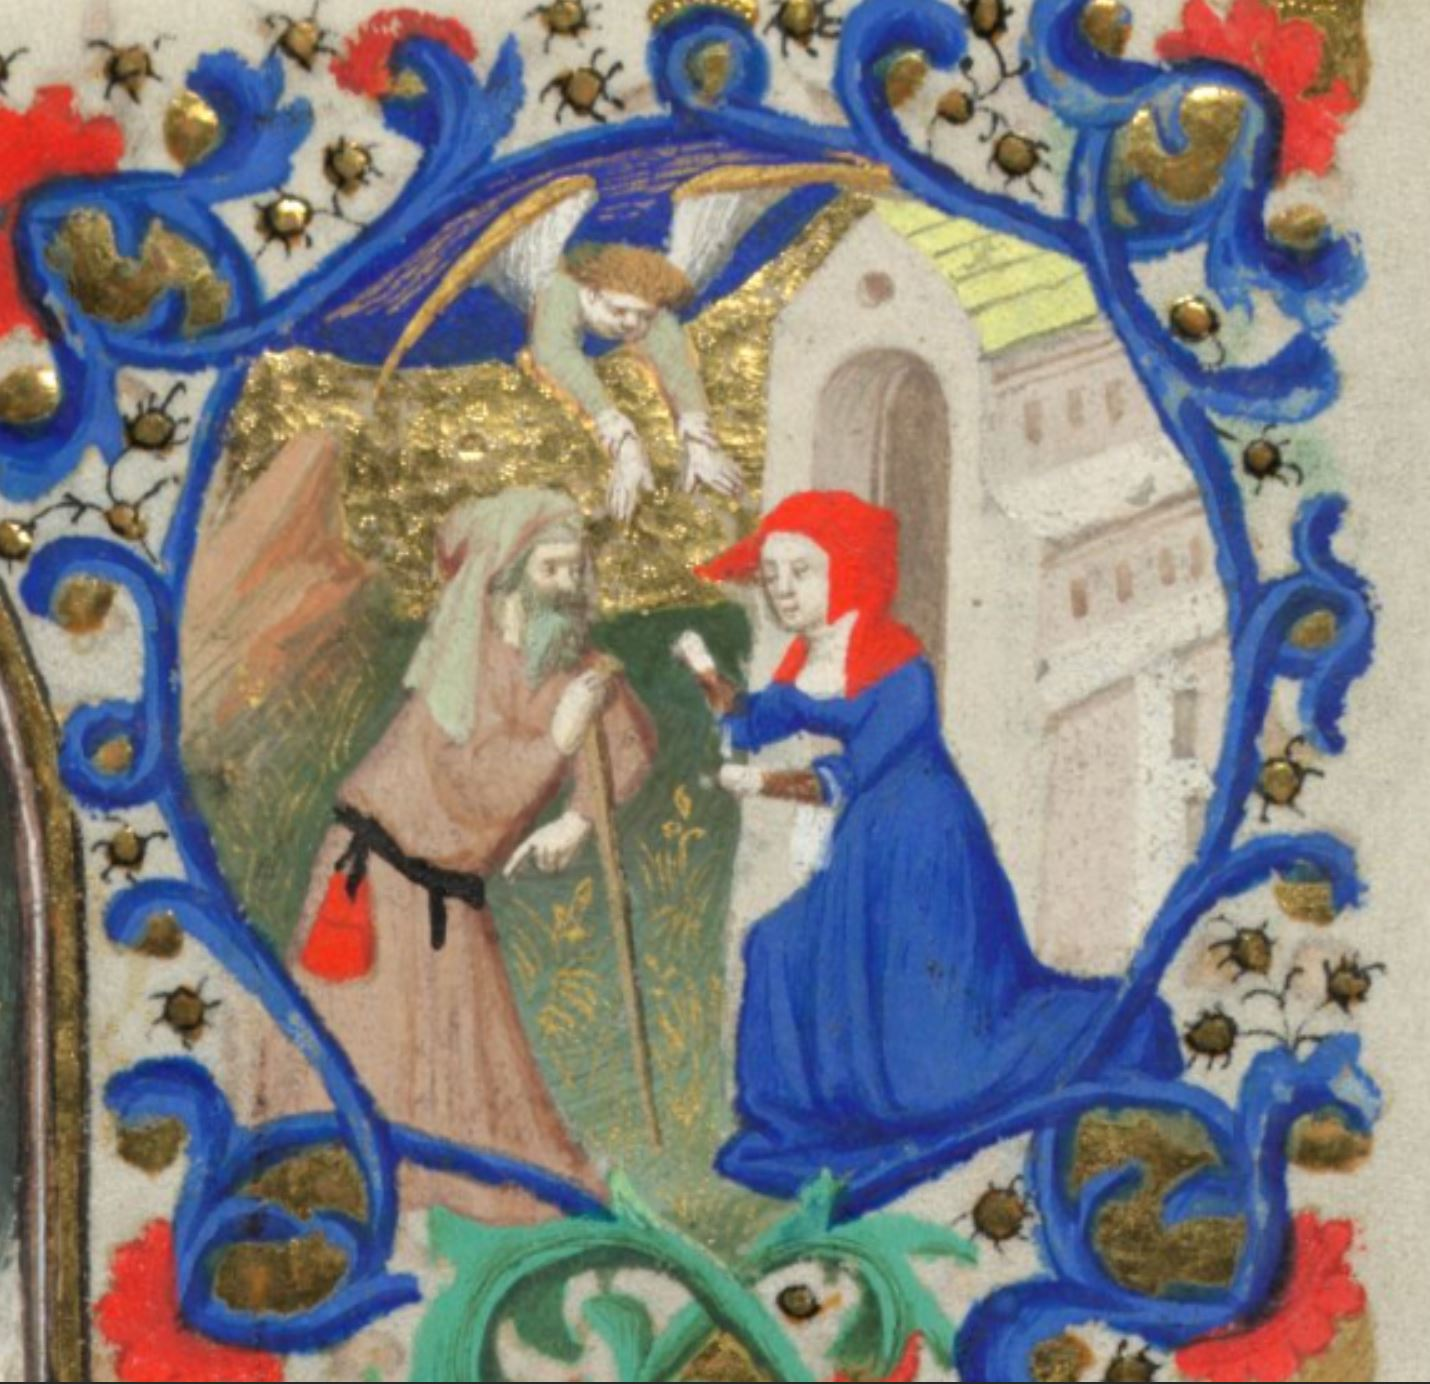 Bedford Hours 1410-30 Natvite_British_Library_Add_MS_18850_f 65r detail Salome